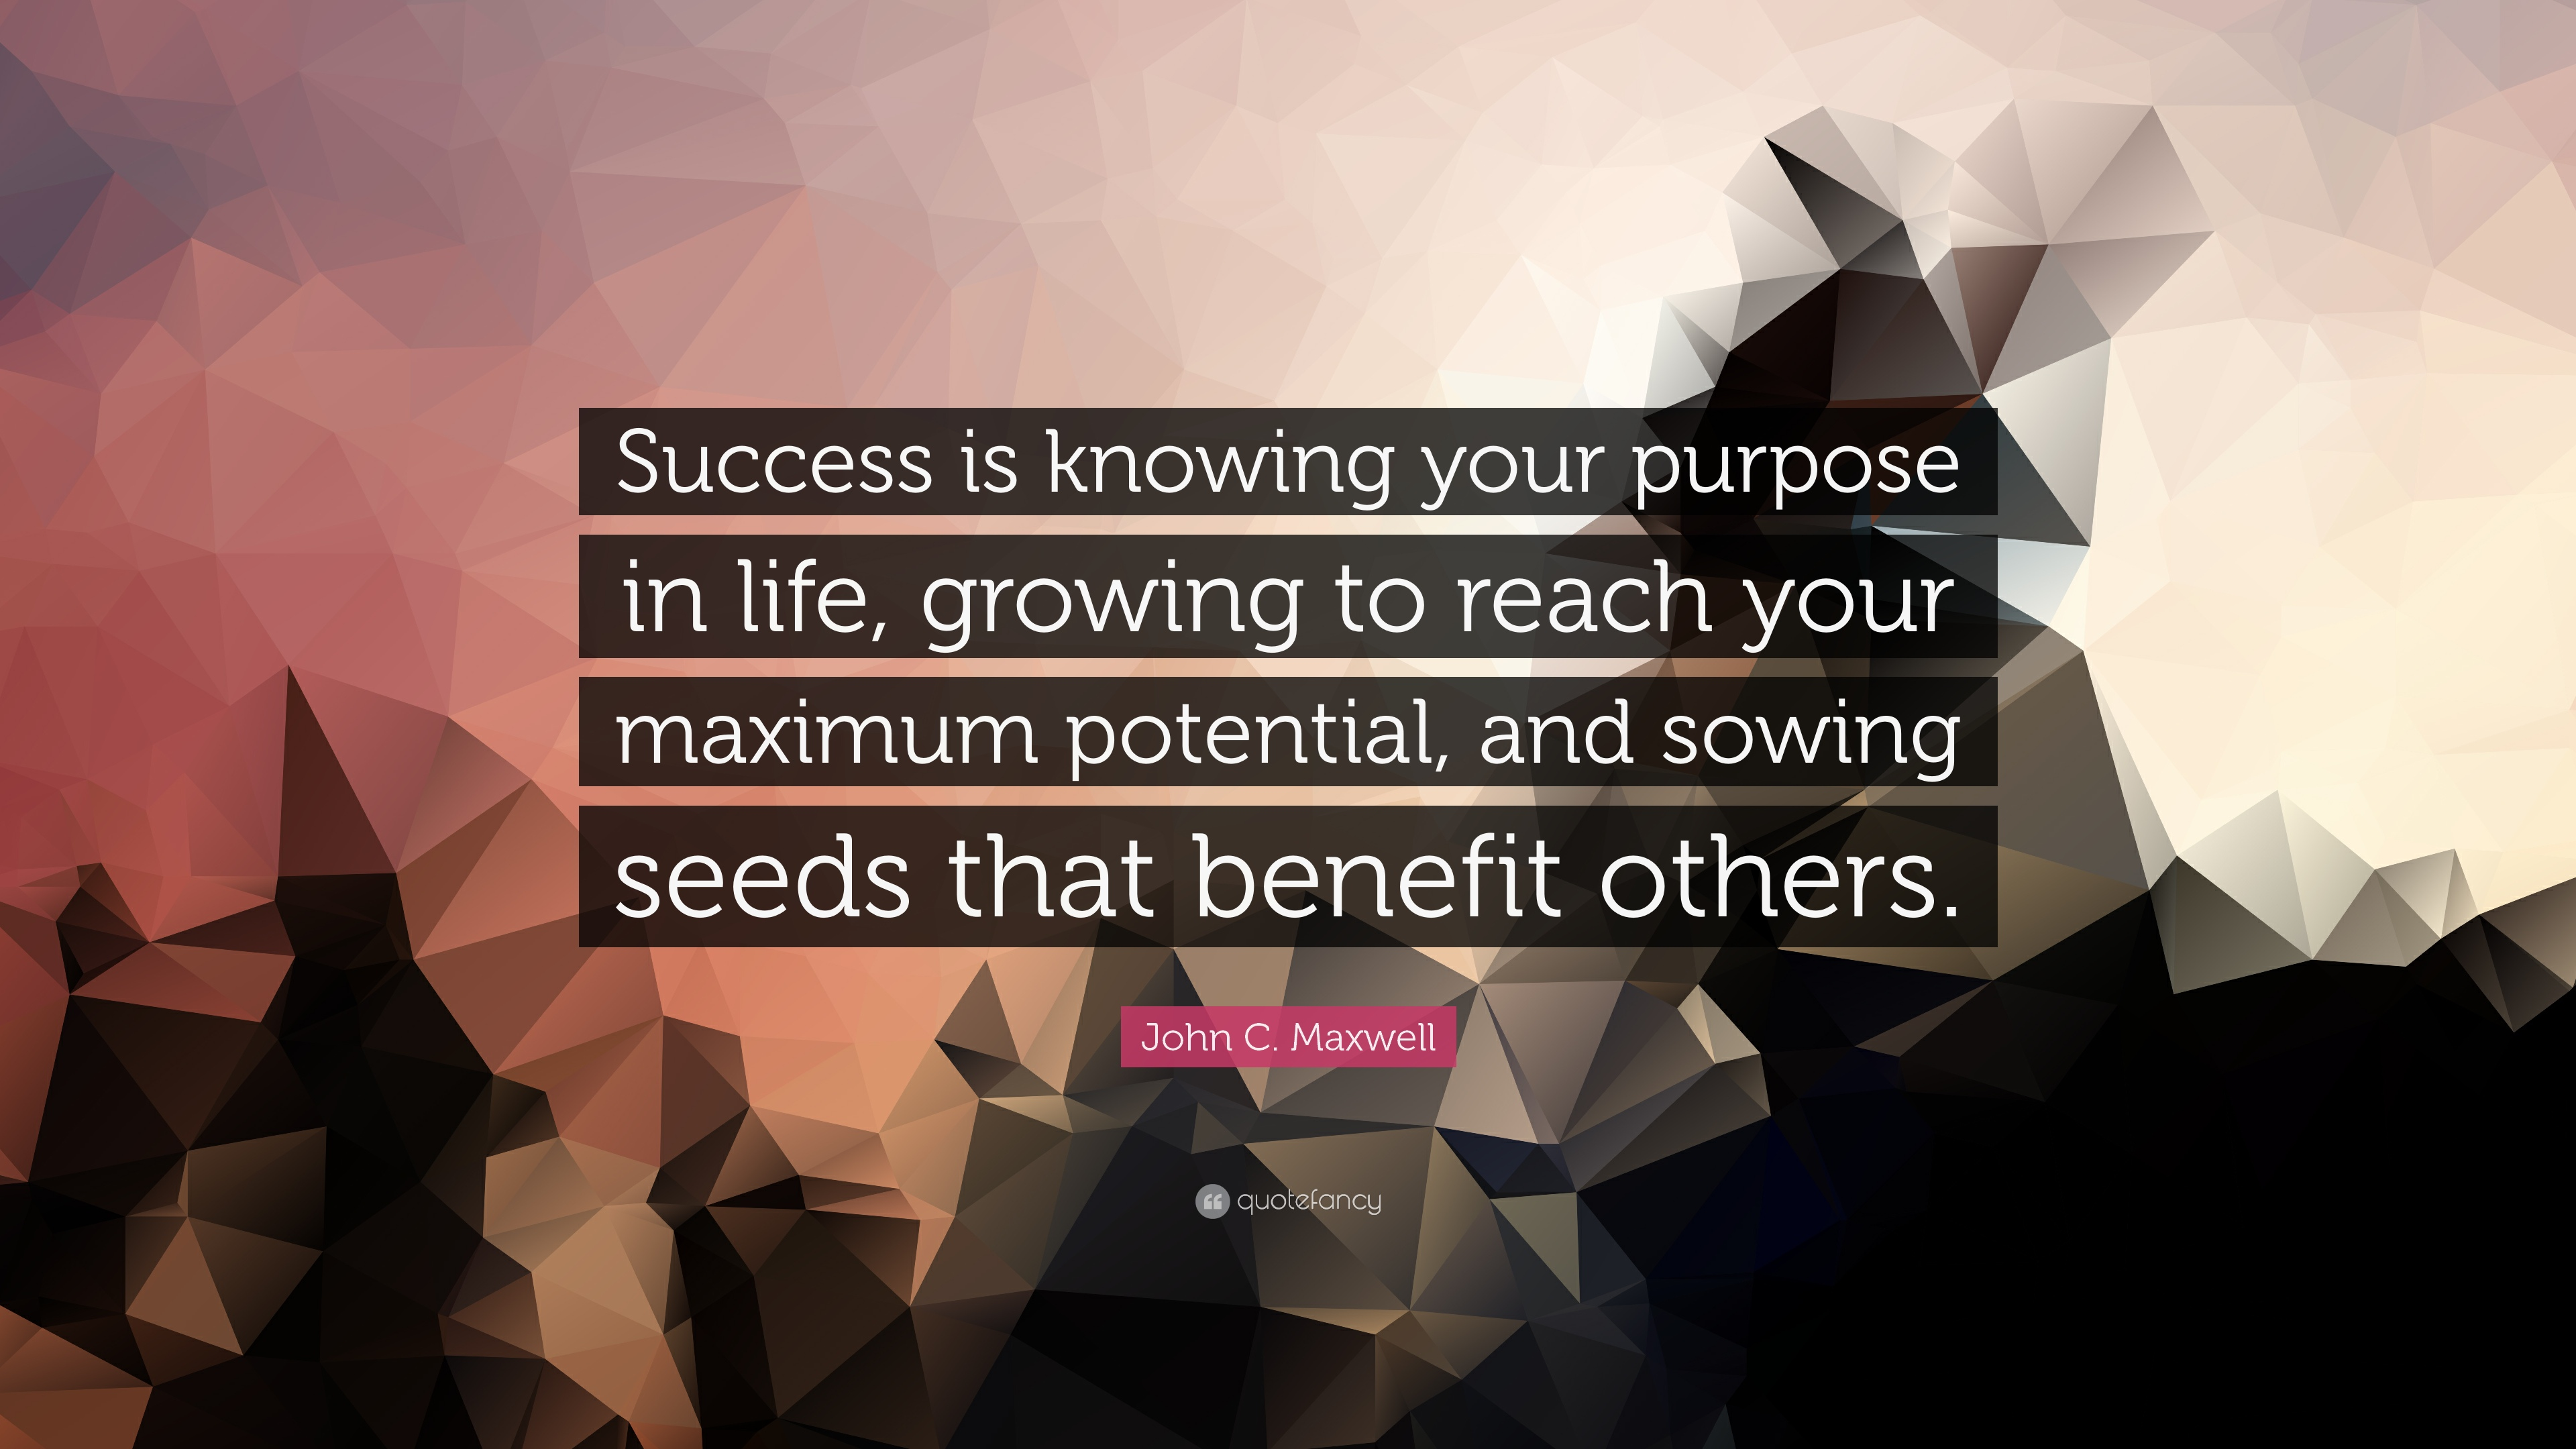 john c maxwell quote success is knowing your purpose in life john c maxwell quote success is knowing your purpose in life growing